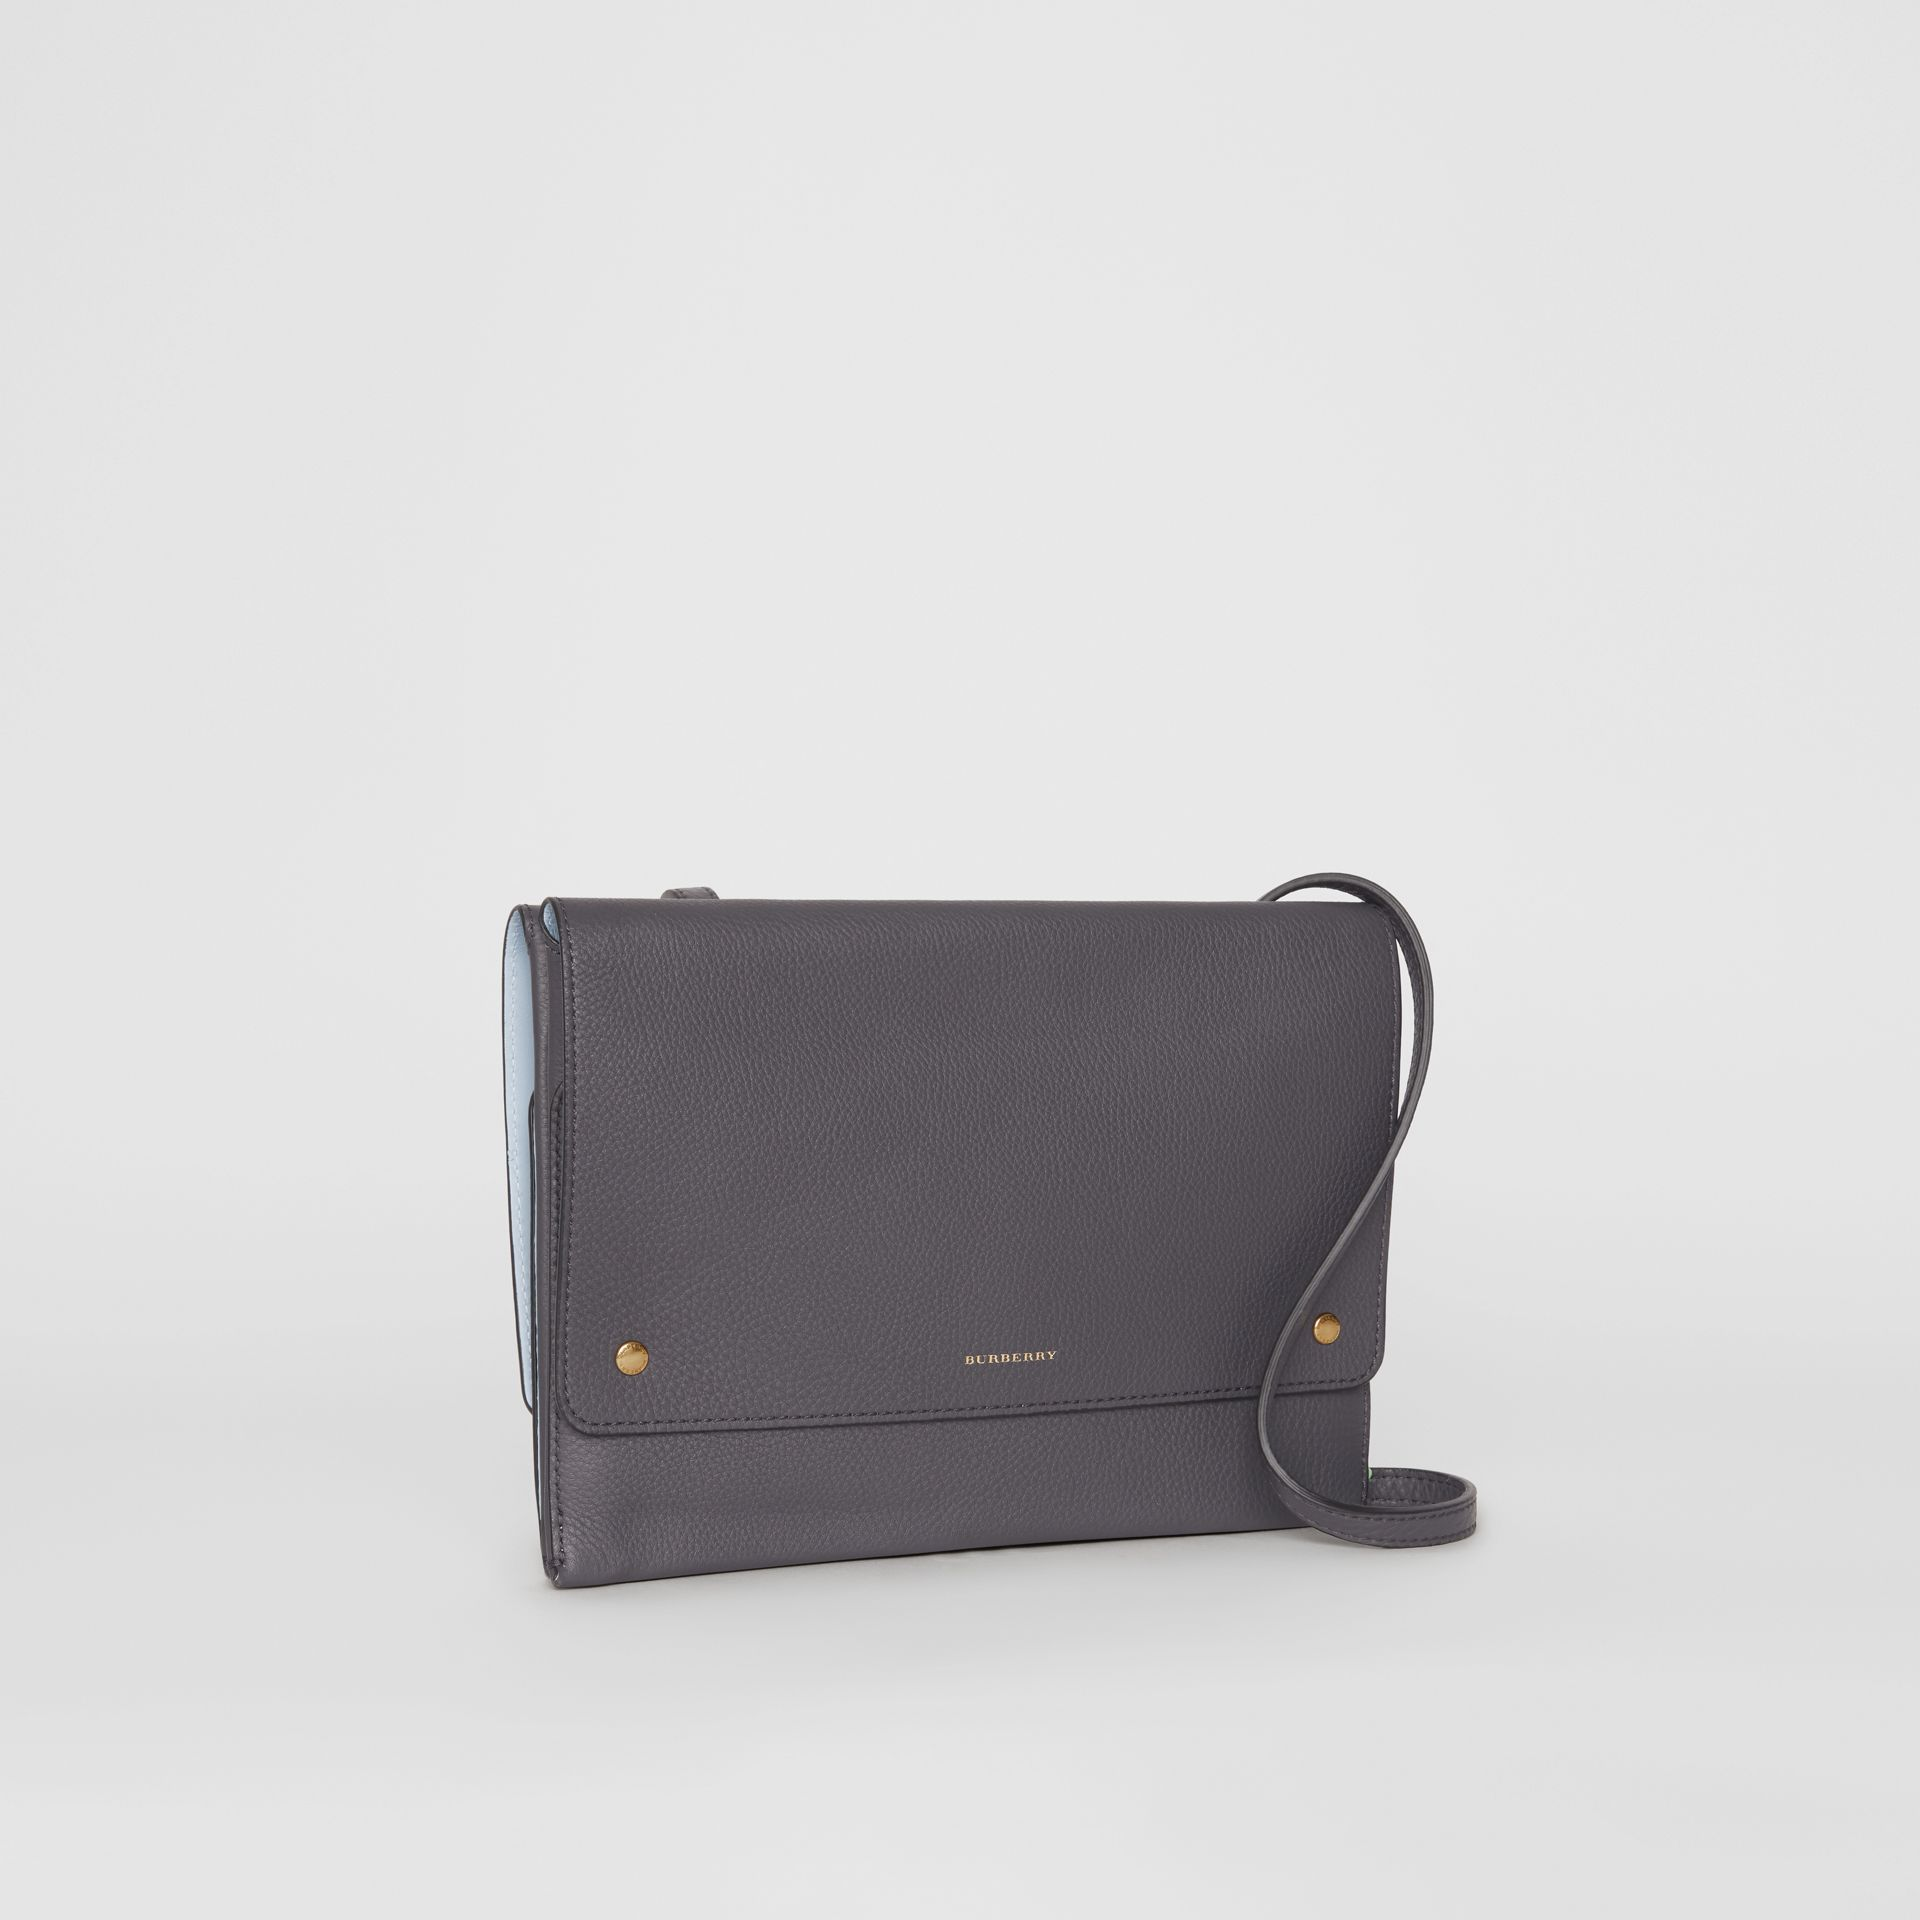 Leather Envelope Crossbody Bag in Charcoal Grey - Women | Burberry United States - gallery image 4